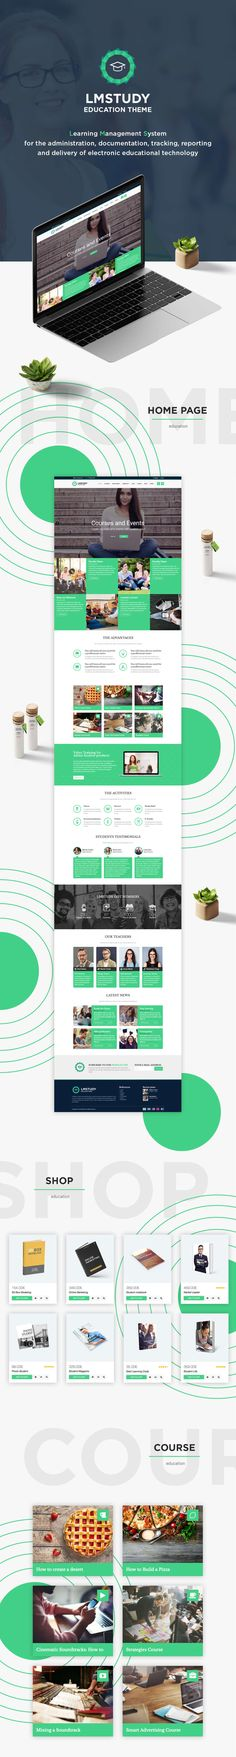 LMStudy - Course / Learning / Education LMS WooCommerce Theme by modeltheme Wordpress Premium, Web Design, Video Background, Event Calendar, Flyer Template, Content Marketing, Wordpress Theme, Seo, The Incredibles